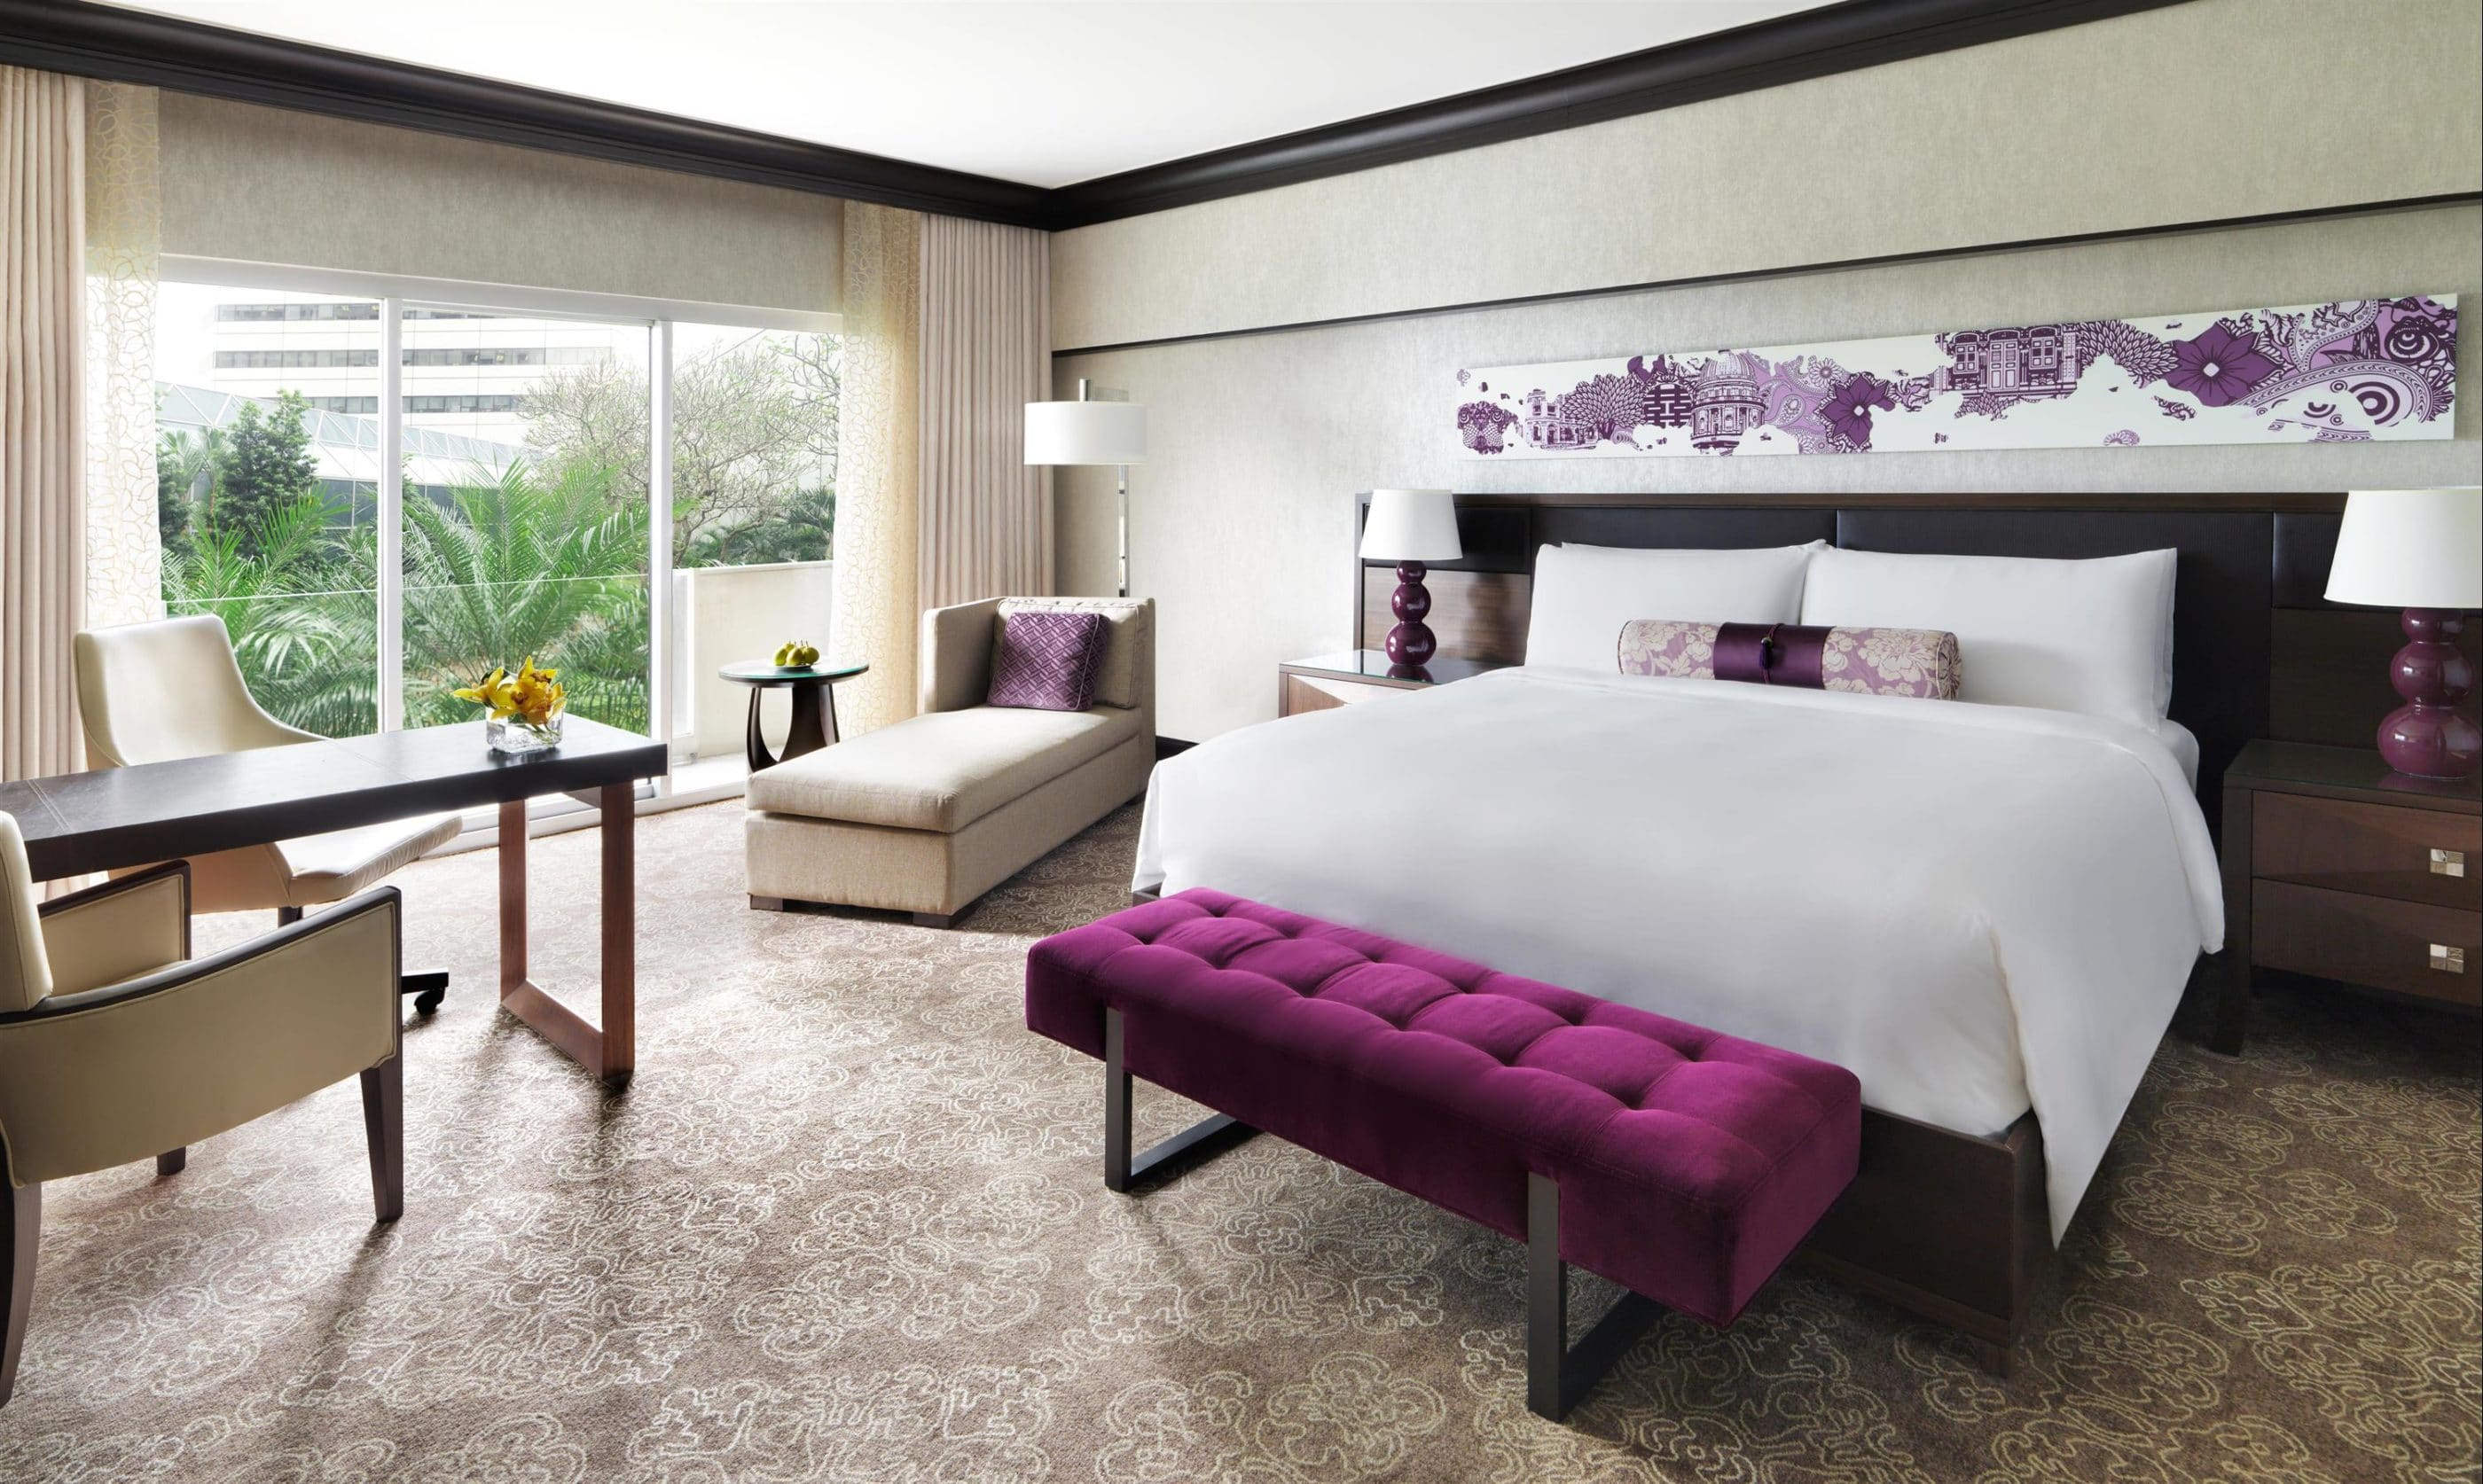 Premier room interior with neutral decor and purple pillow, art, and bench accents.